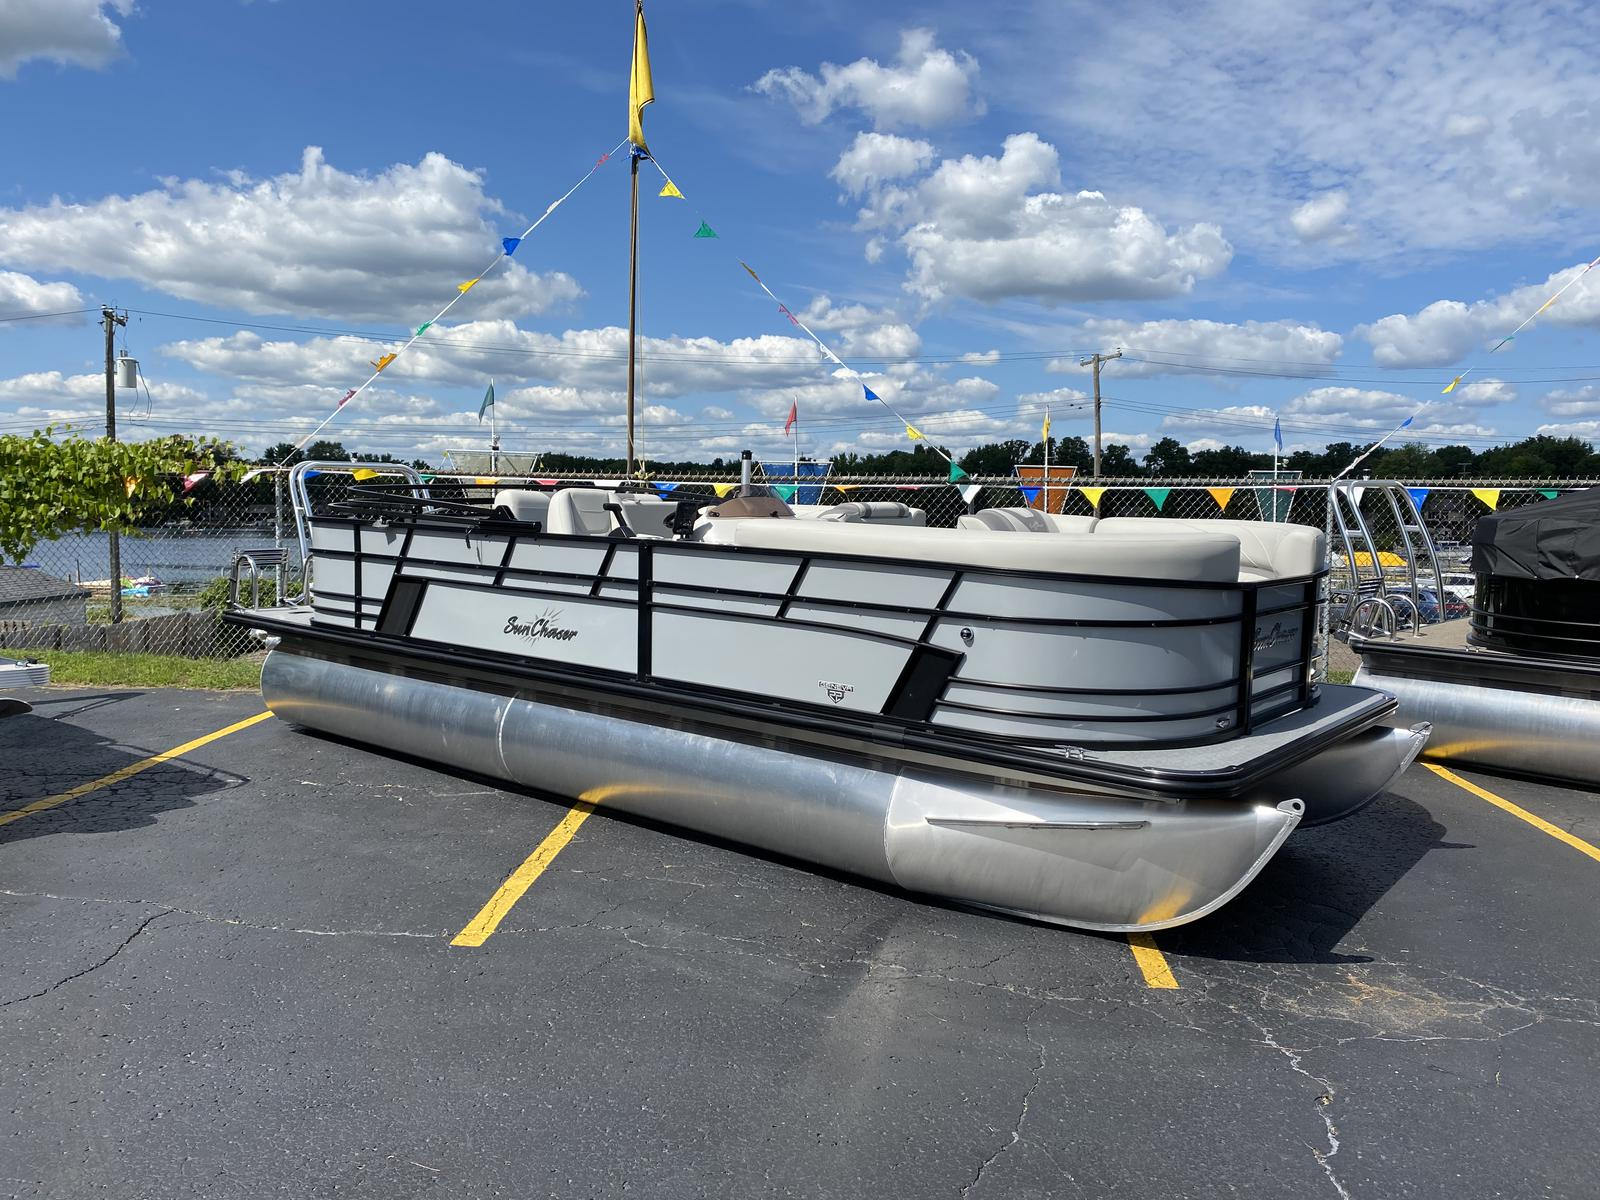 2020 SunChaser boat for sale, model of the boat is Geneva Cruise 22 SB & Image # 1 of 12